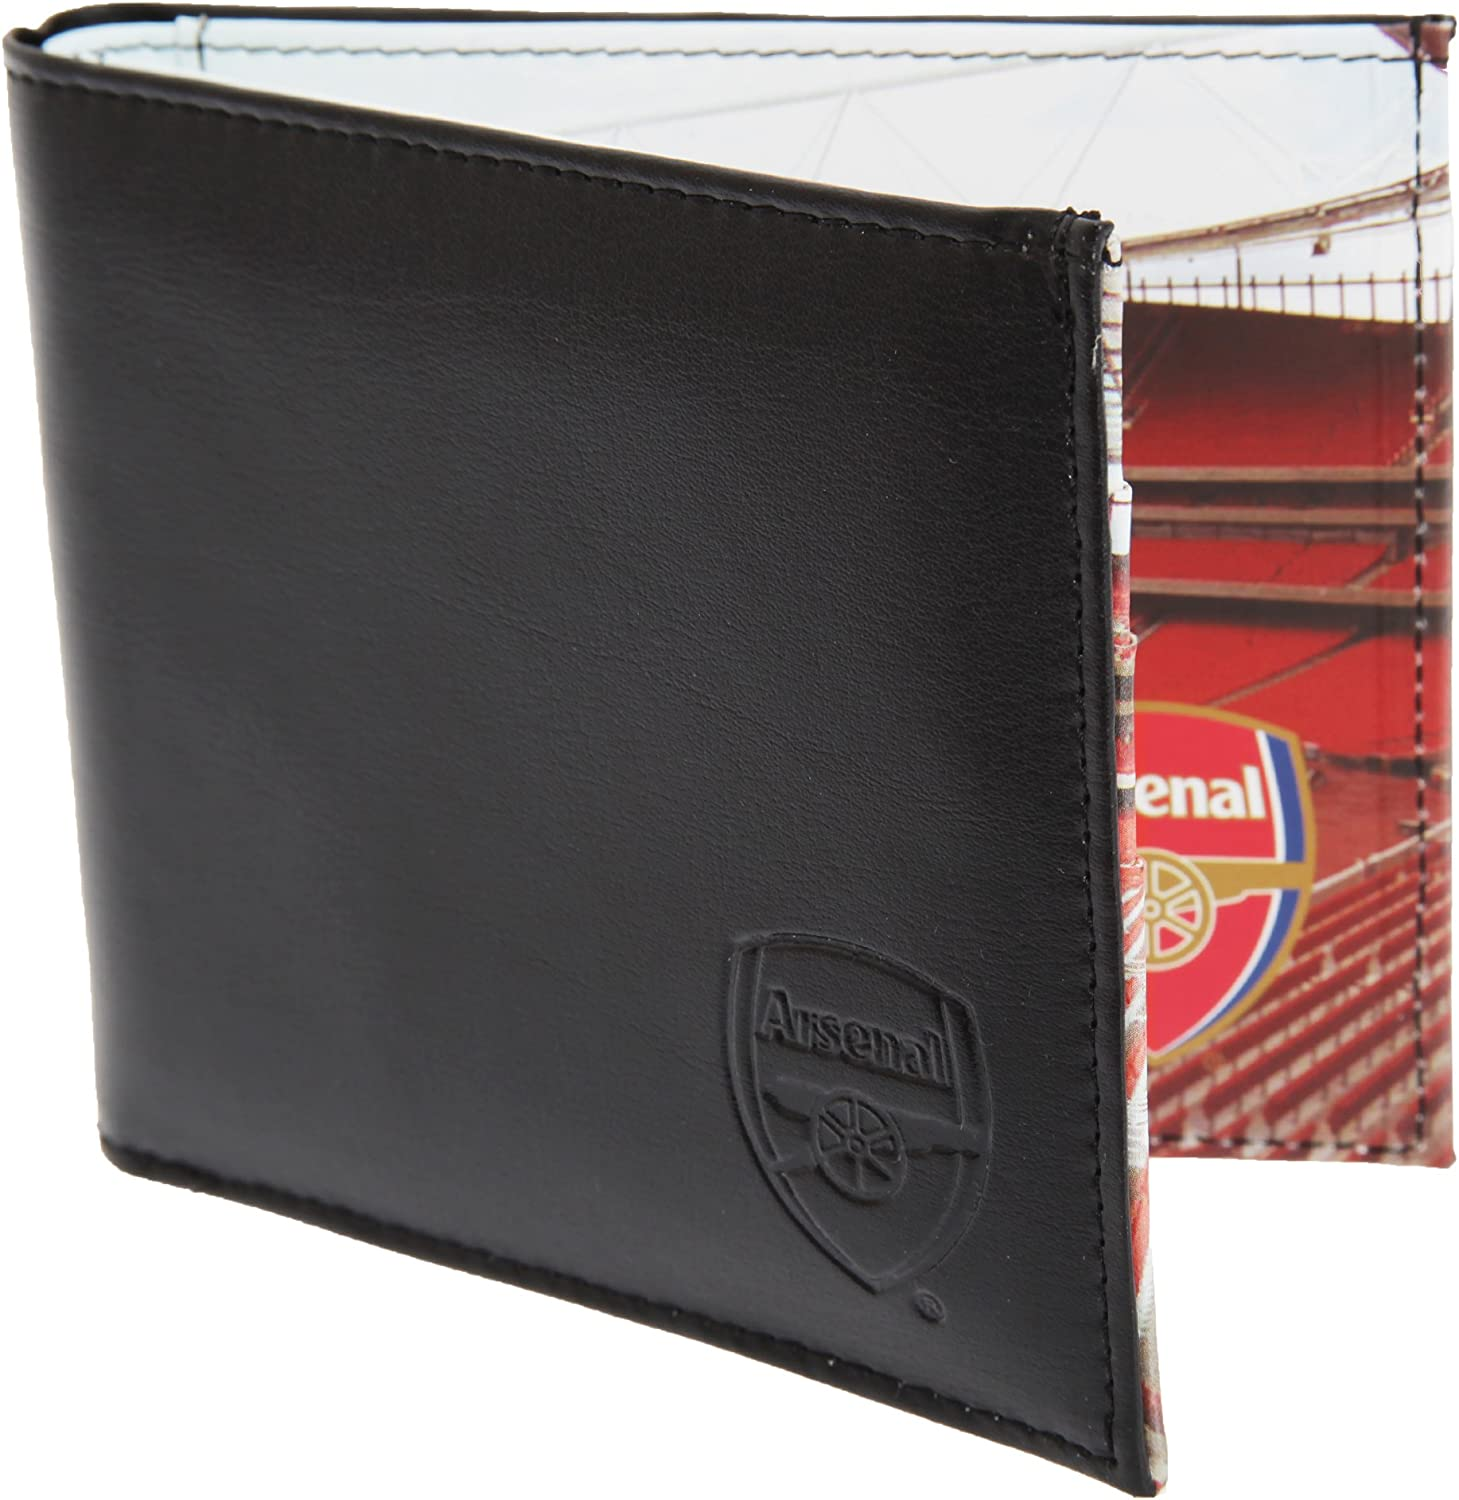 Football Fc Club Crest Official 7000 Arsenal Embroidered Black Leather Wallet